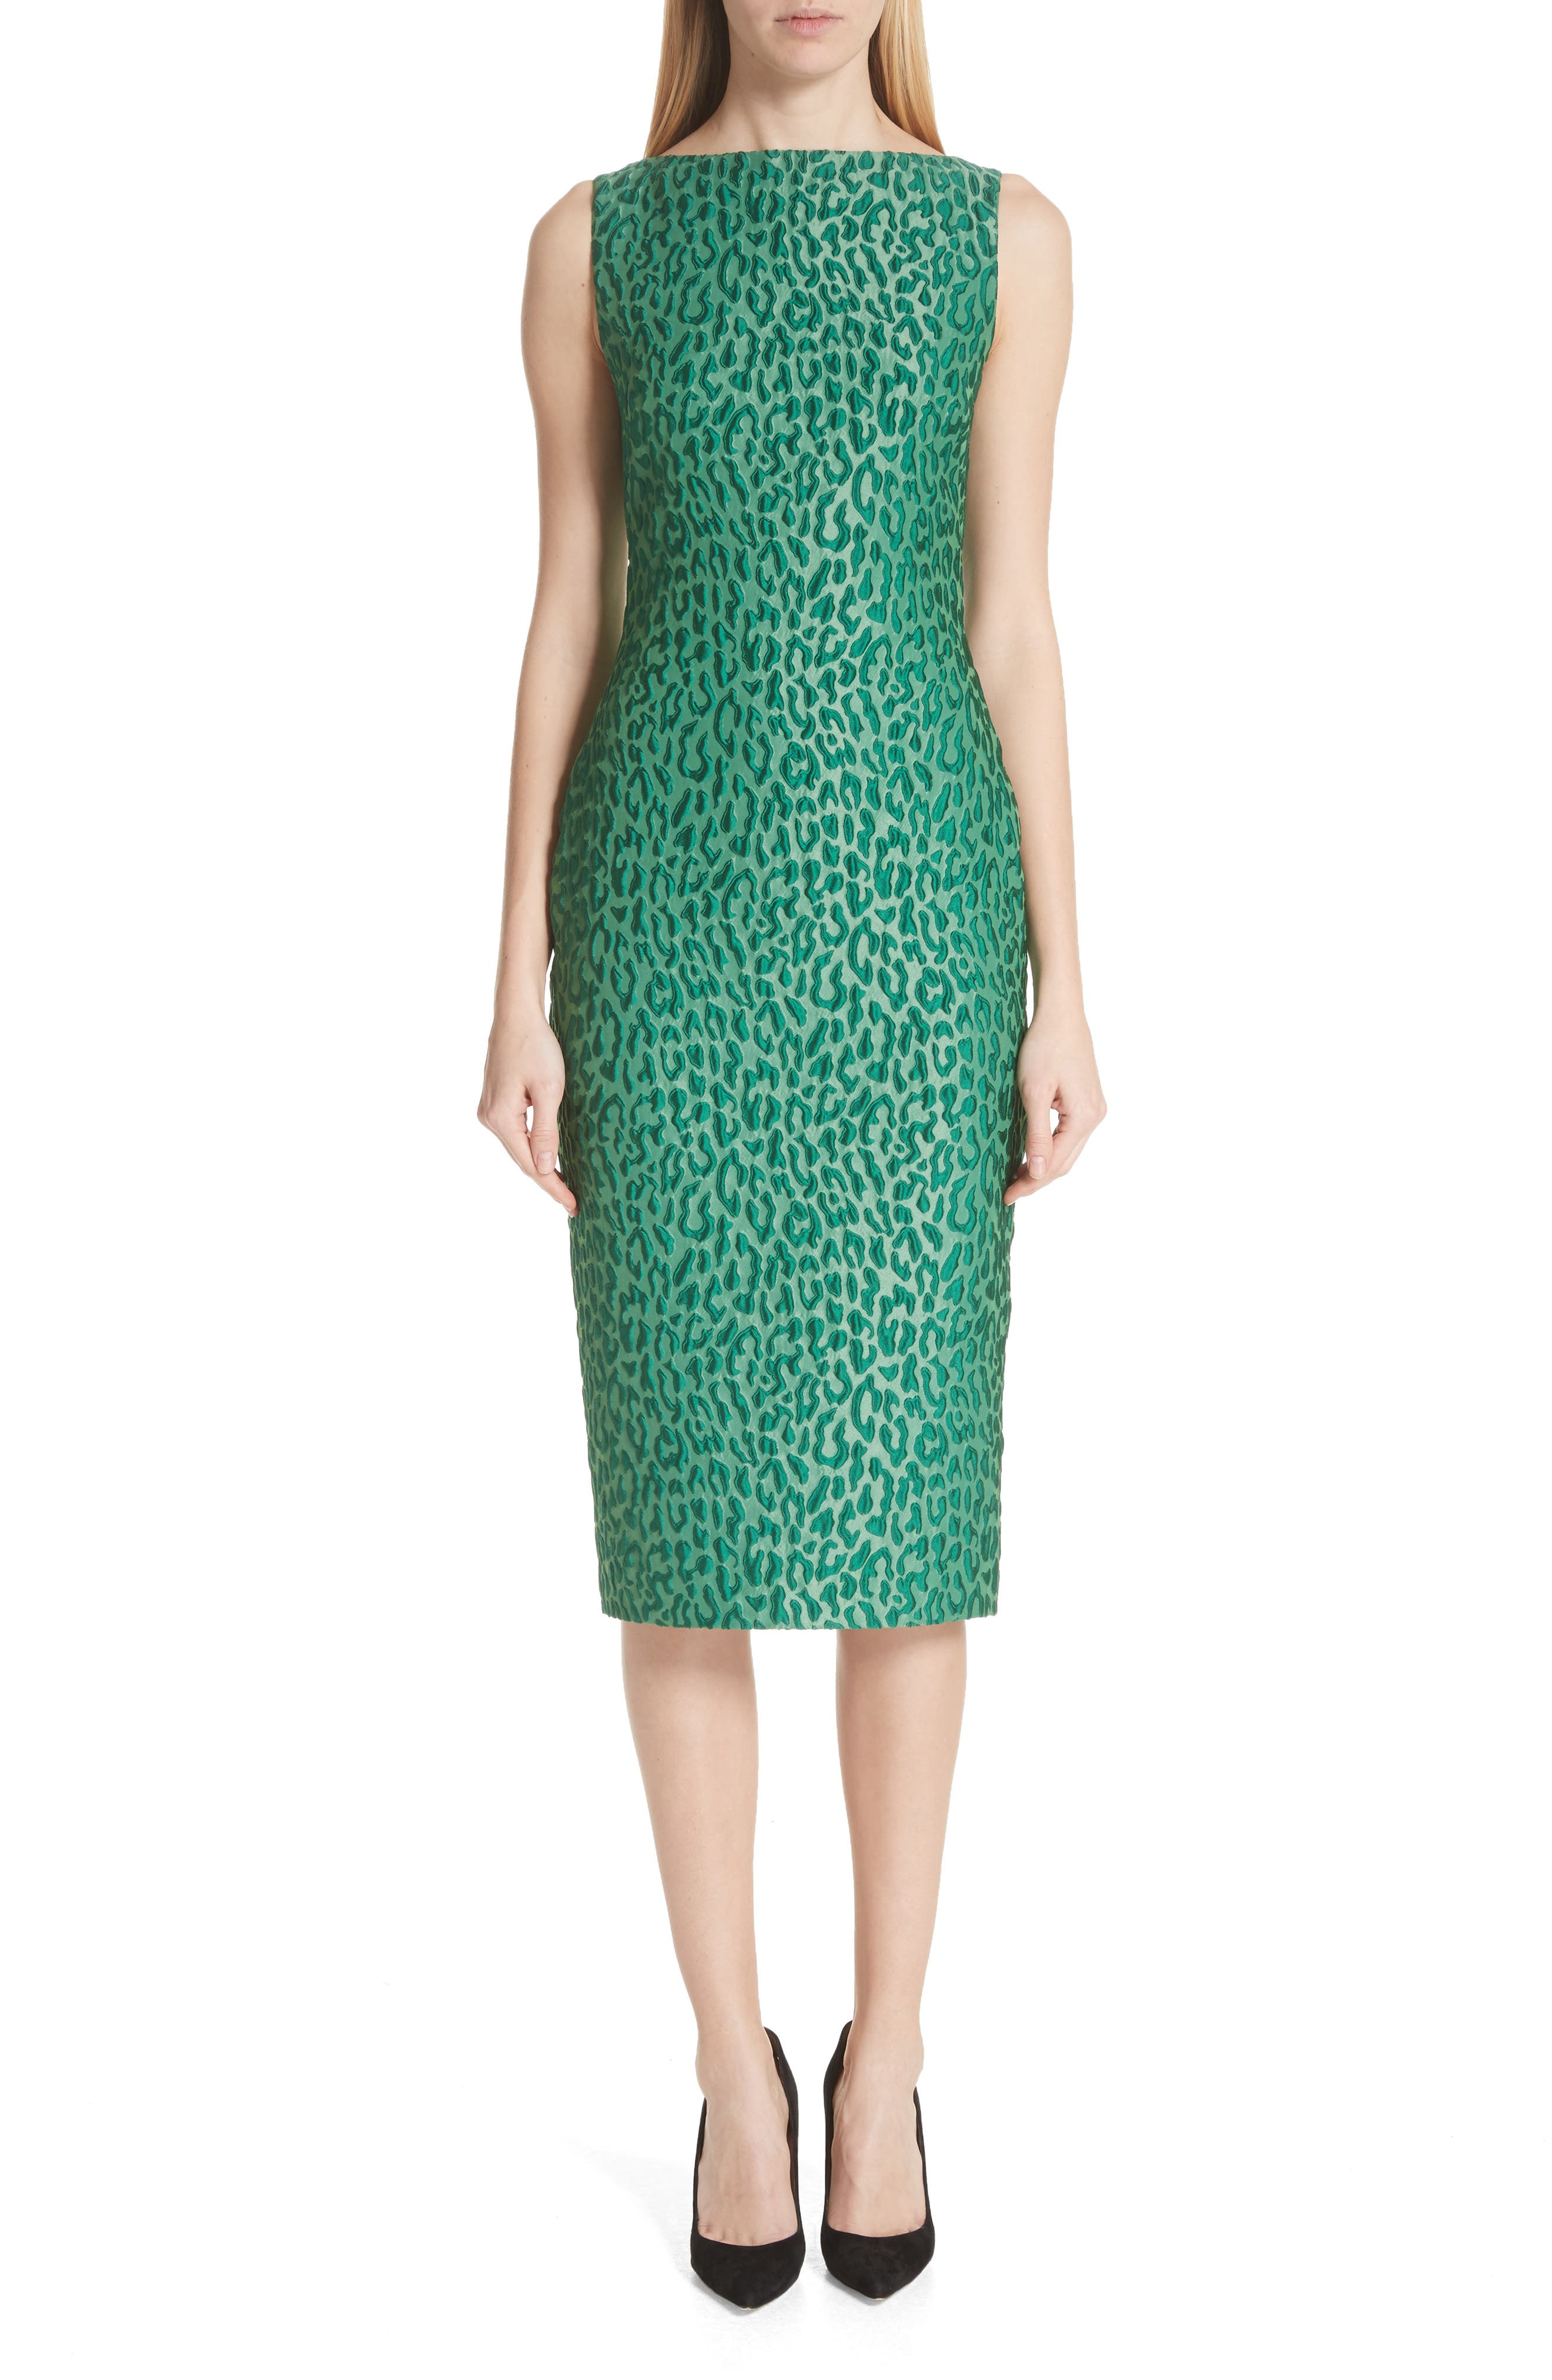 Leopard Jacquard Sheath Dress,                             Main thumbnail 1, color,                             Green